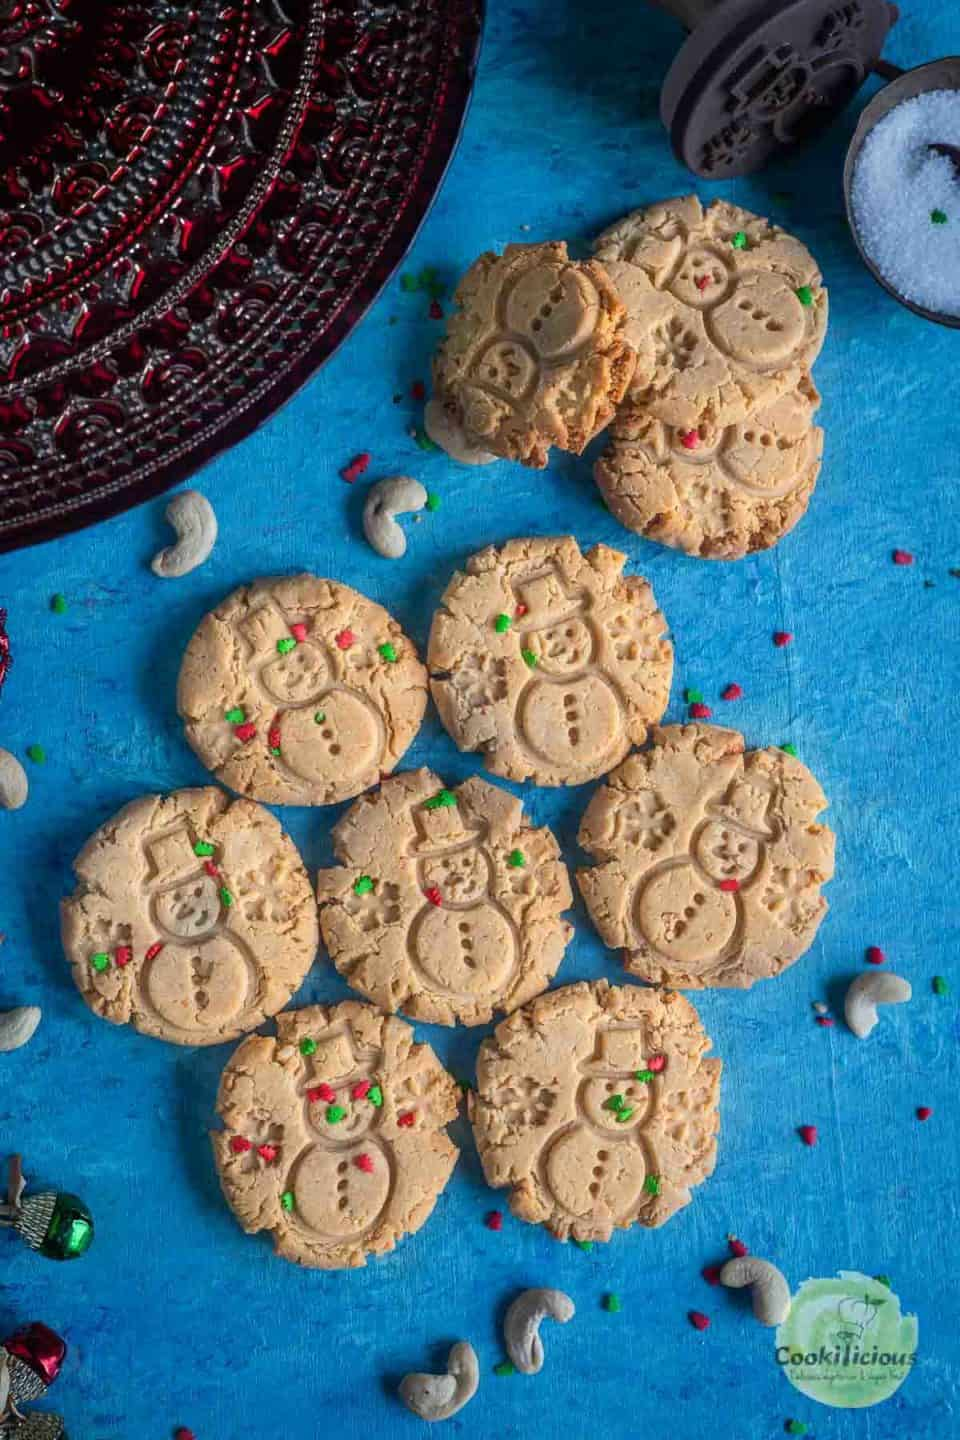 Nankhatai cookies arranged like a flower on the table